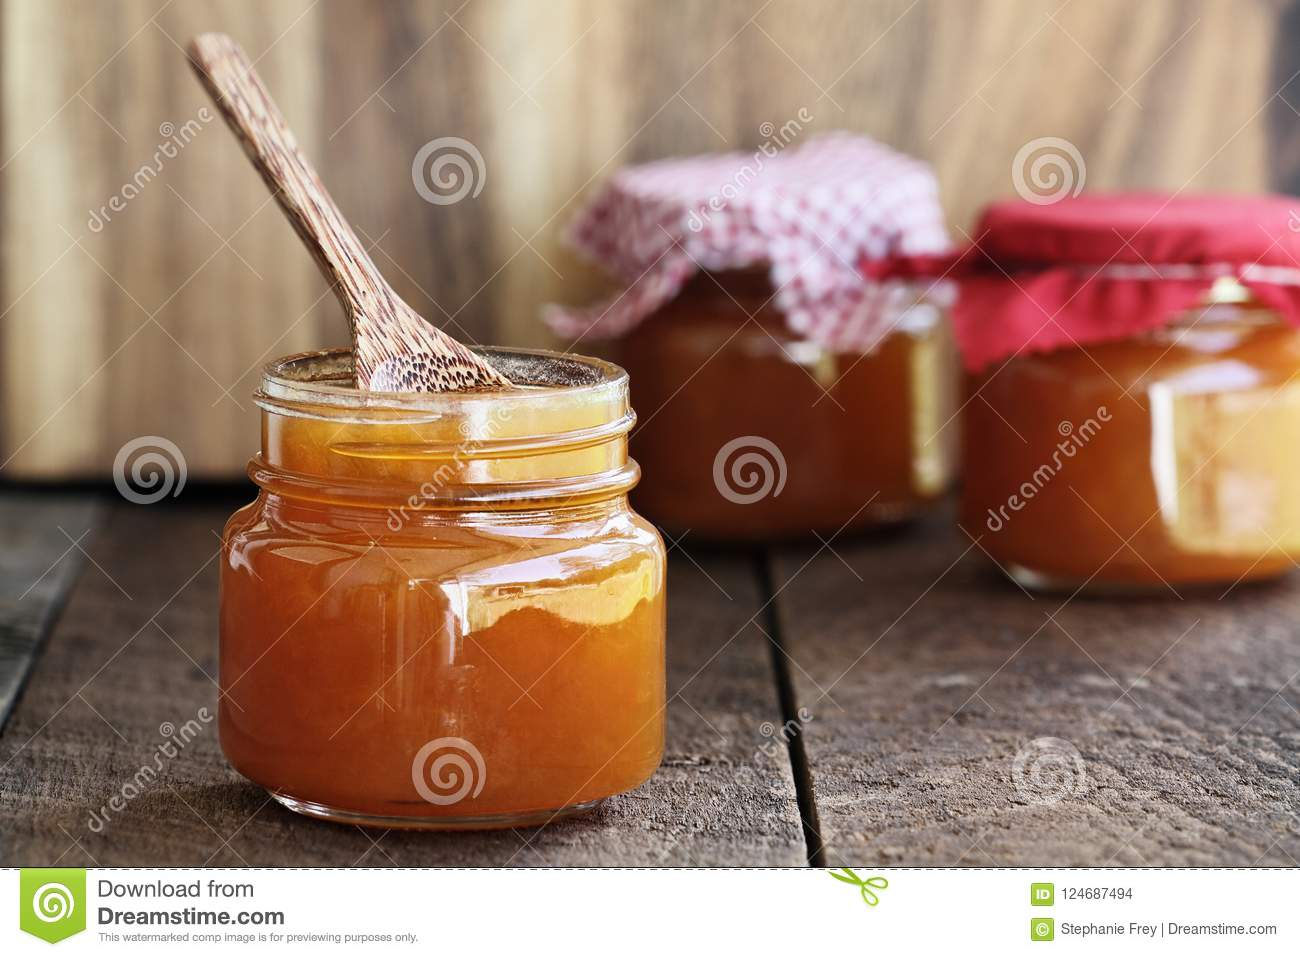 Homemade Salted Vanilla Cantaloupe Jam Stock Photo Image Of Breakfast Fruit 124687494 It's made to order so that your jam is always fresh. dreamstime com